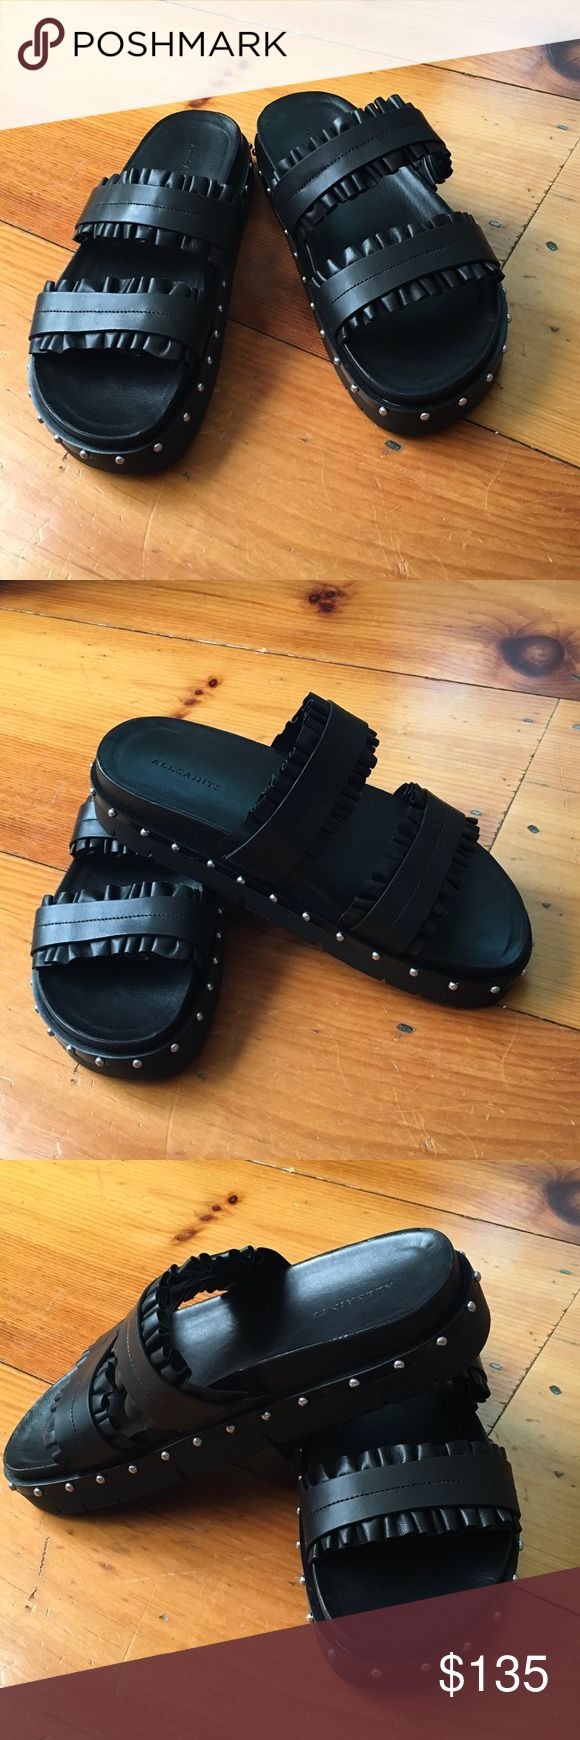 """ALLSAINTS Alanna Ruffle Studded Slide Sandals ALLSAINTS Alanna Ruffle Studded Slide Sandals in Black! US Size 7  - Fits True to Size. Open Toe Slip On. Leather Ruffle Detail at Straps. Stud Detail at Sole. Molded Footbed. 1.5"""" Platform? Leather Upper & Lining, Rubber Sole. Brand New! All Saints Shoes Sandals"""